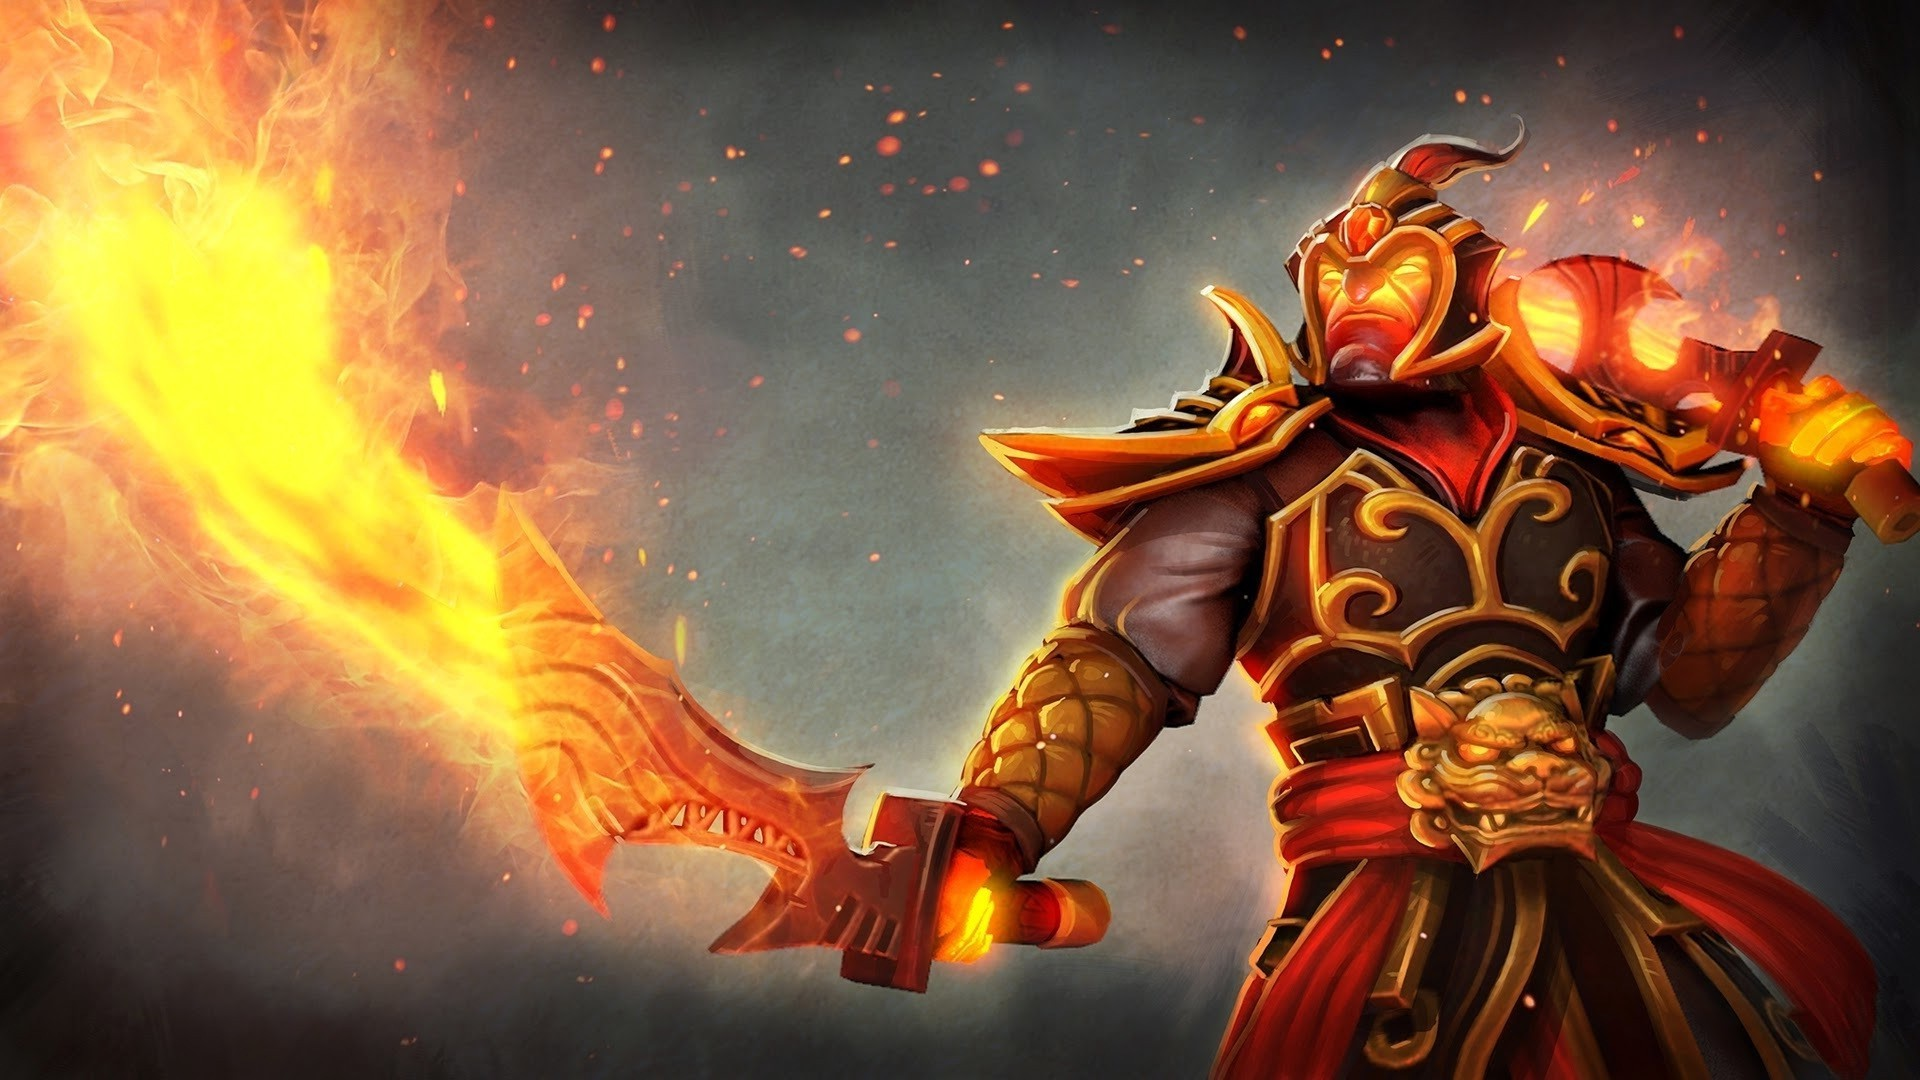 1920x1080 New Ember Spirit Dota 2 Wallpapers Hd Desktop and Mobile Backgrounds